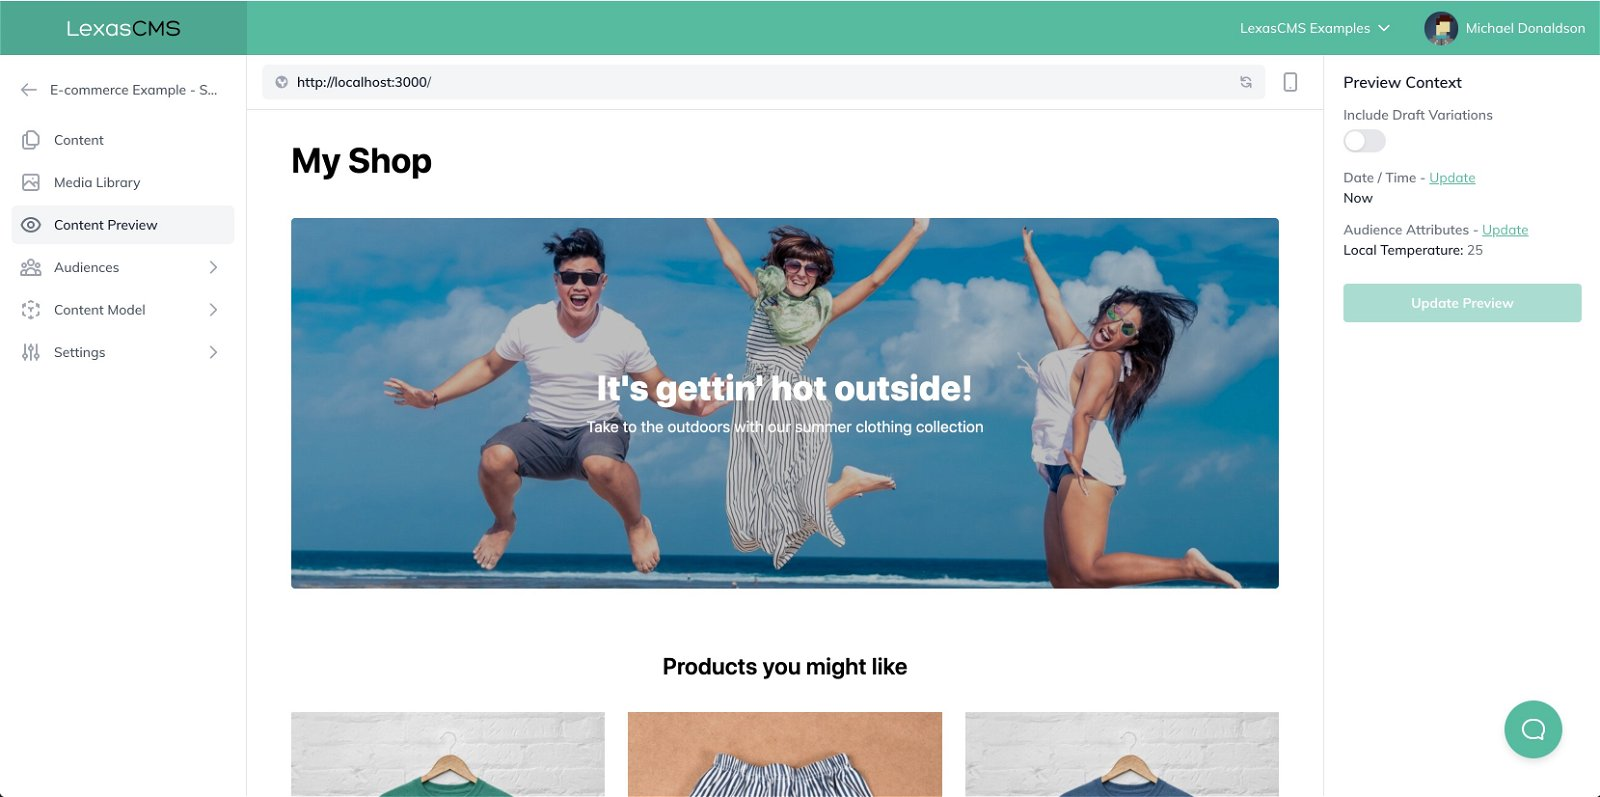 My Shop Warm Climate Preview